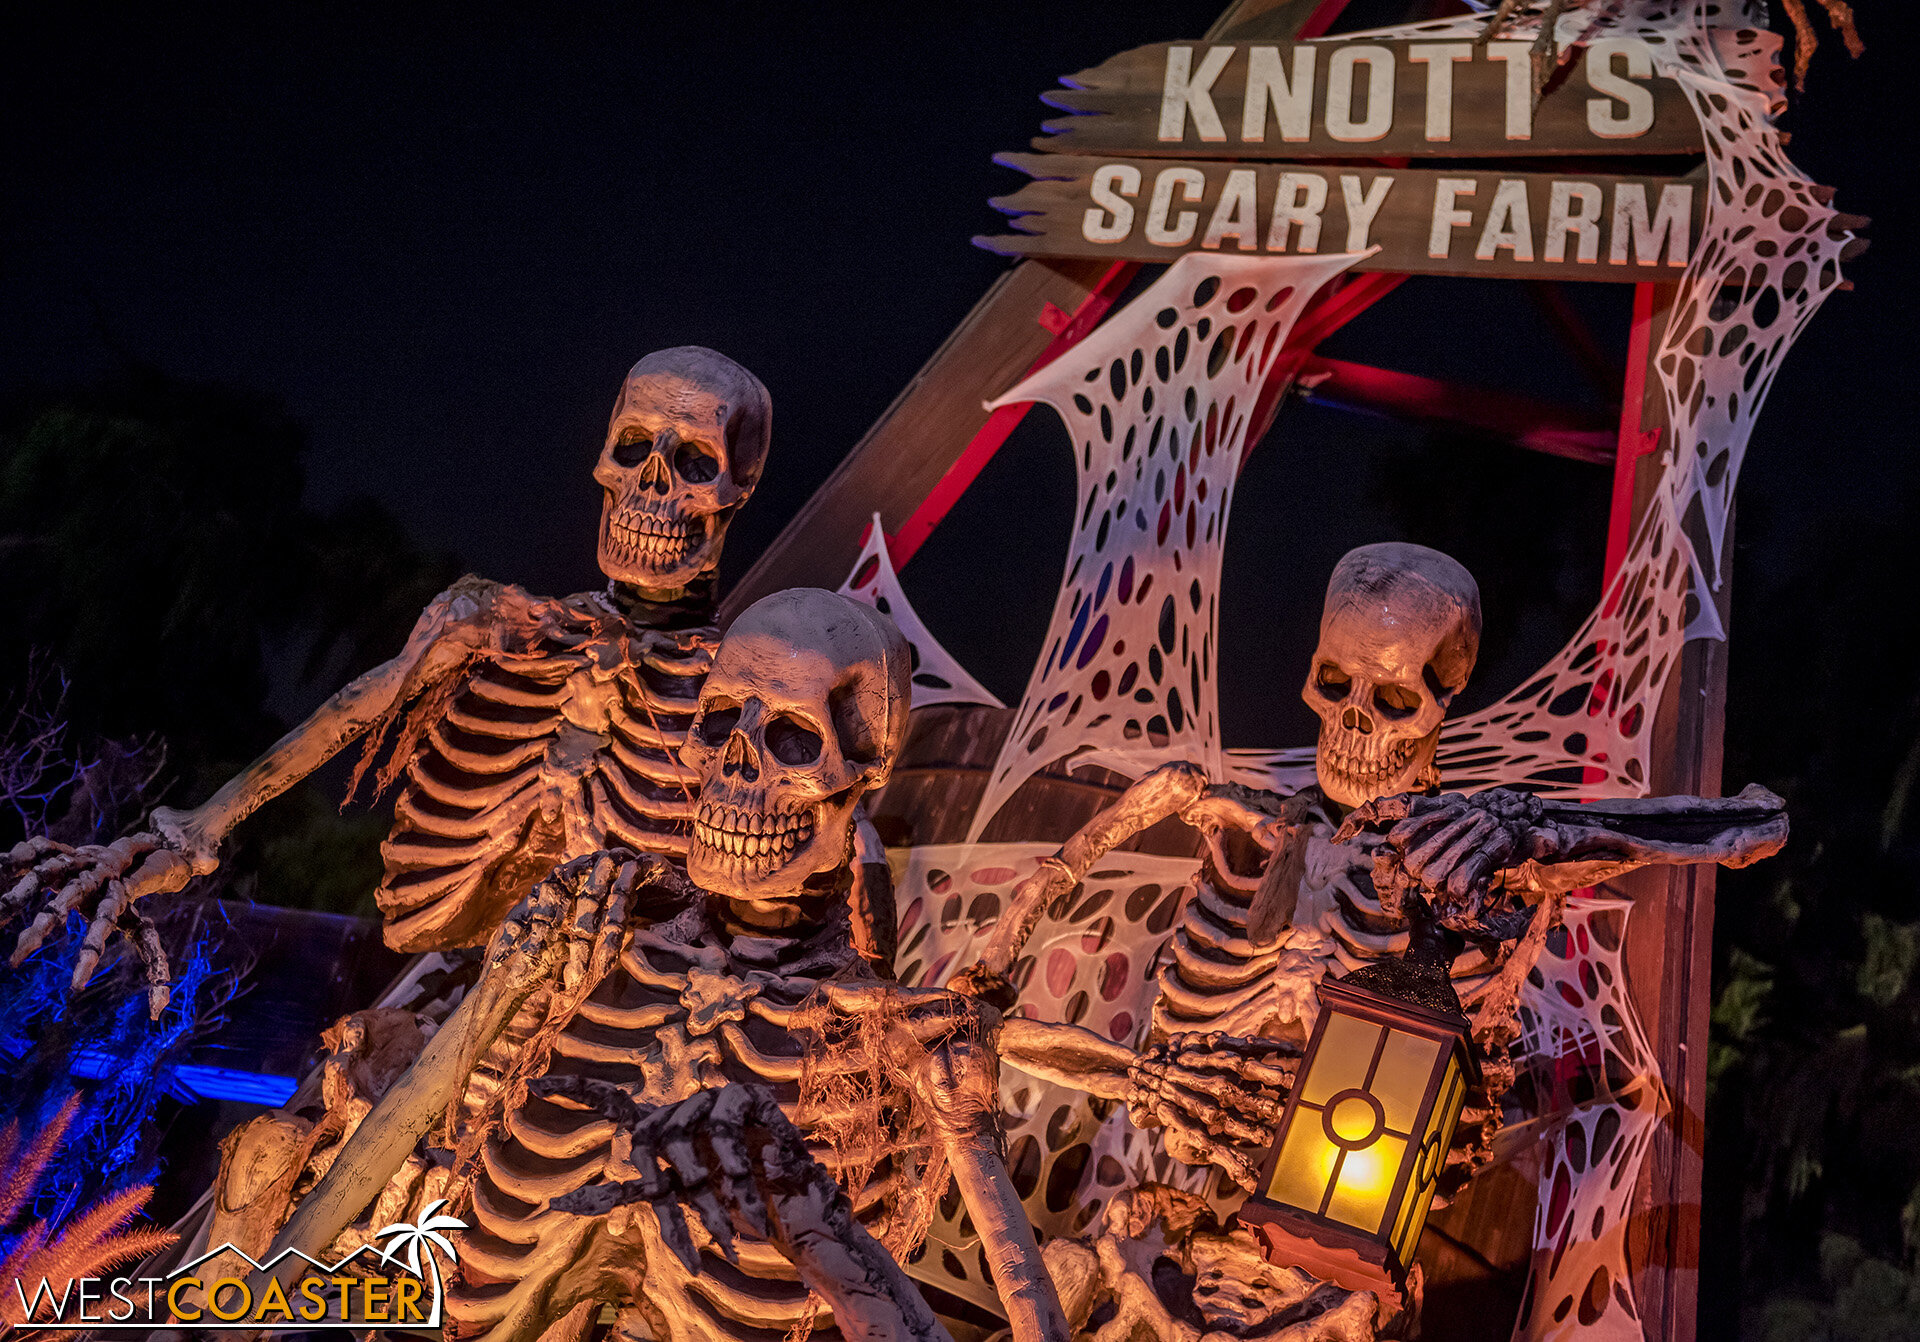 Don't wait till eternity.  Go visit Knott's Scary Farm now!  Or, well, next weekend!